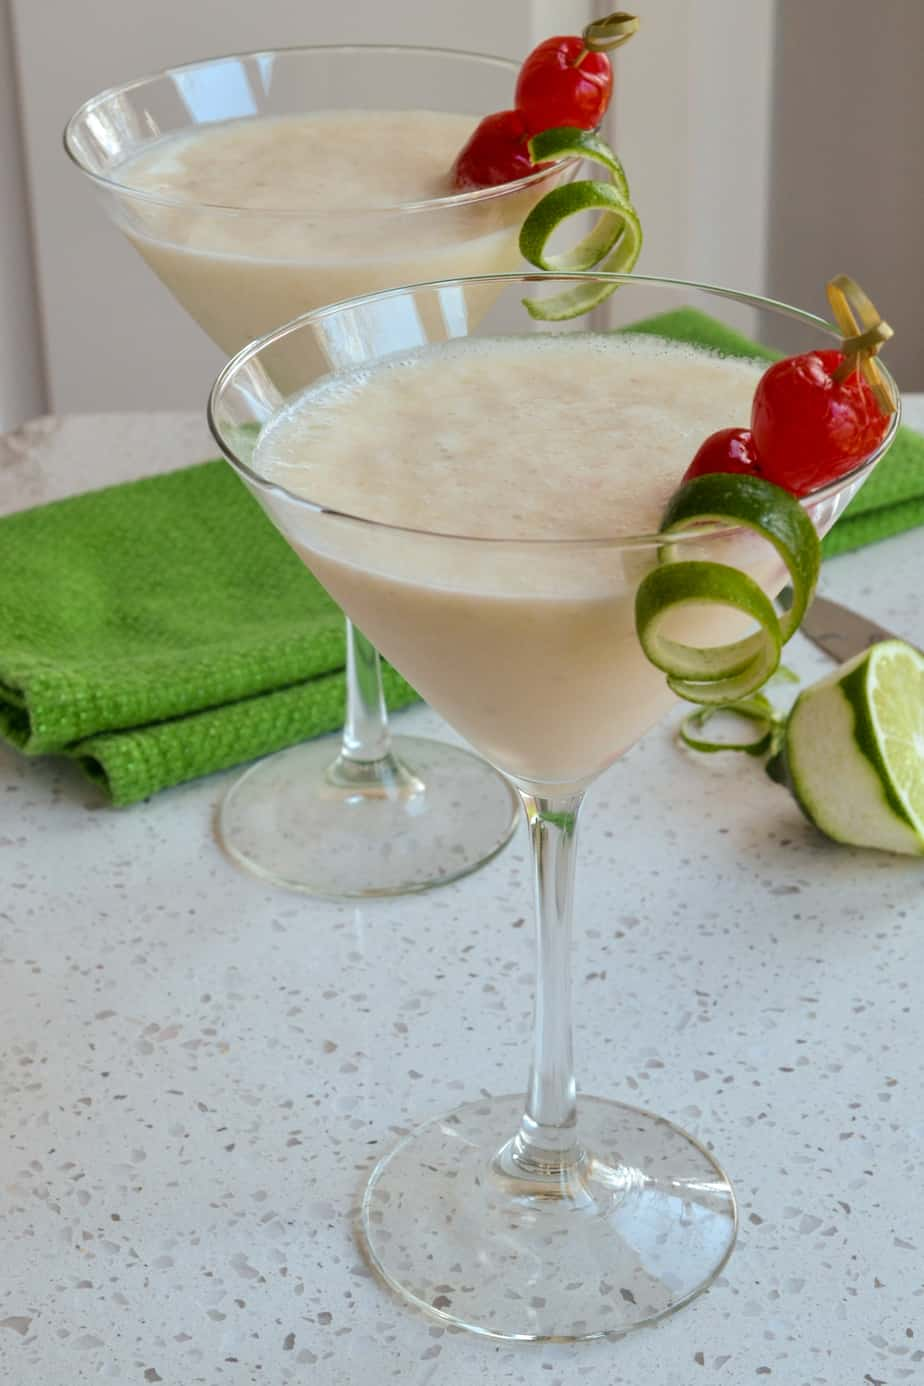 Frozen Banana Daiquiris garnished with a lime twist and a cherry.